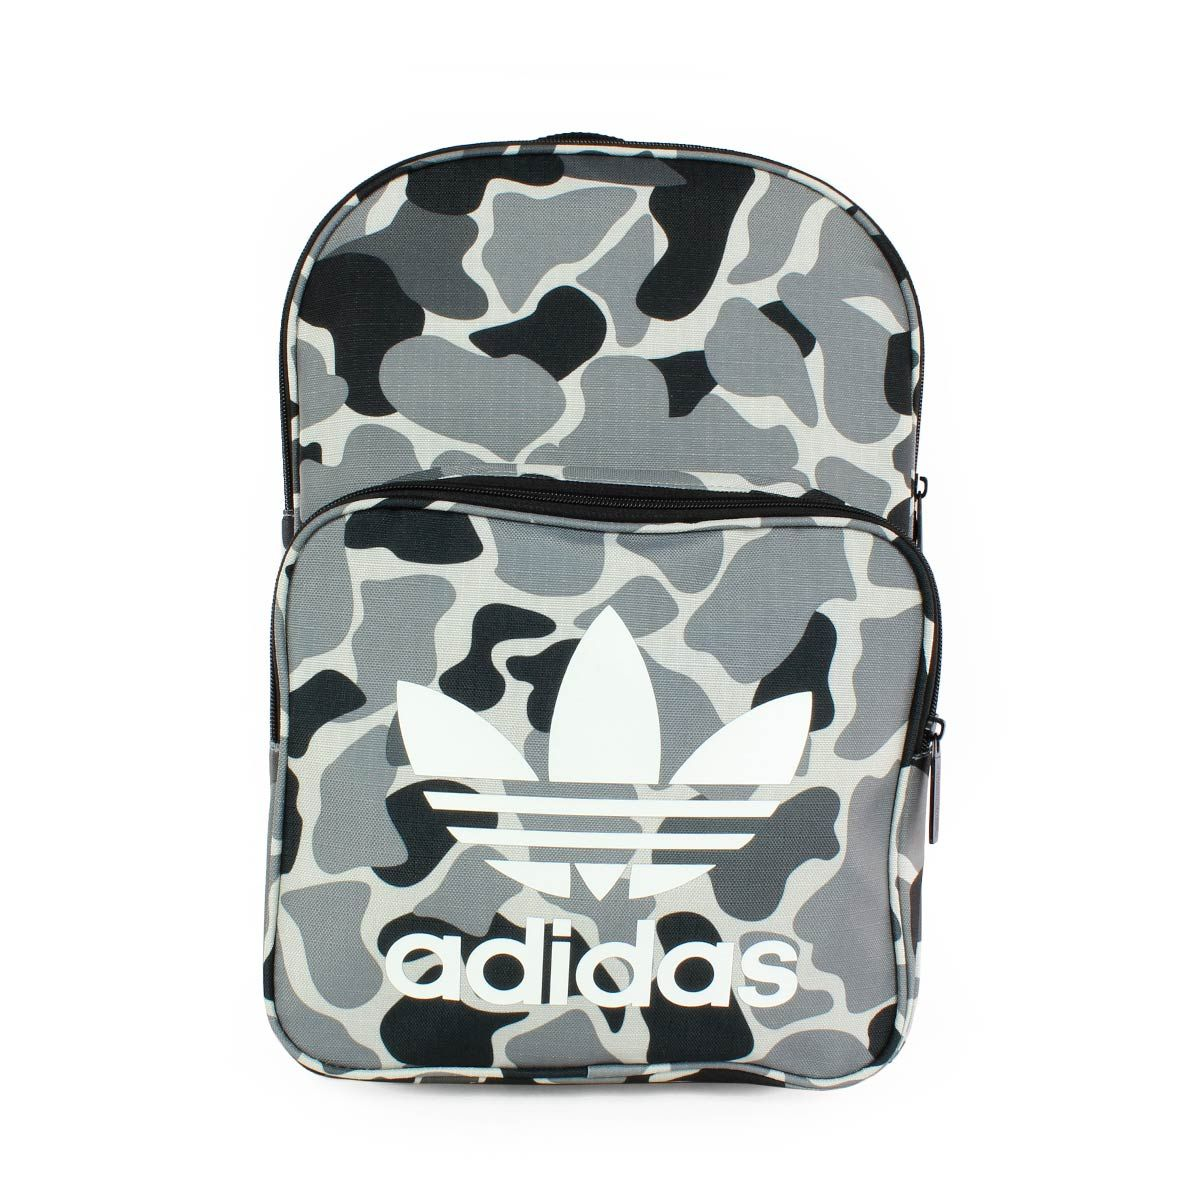 0fb5b1de637 Adidas Classic Camouflage Backpack γκρι camo. #sneakerstown #adidas ...